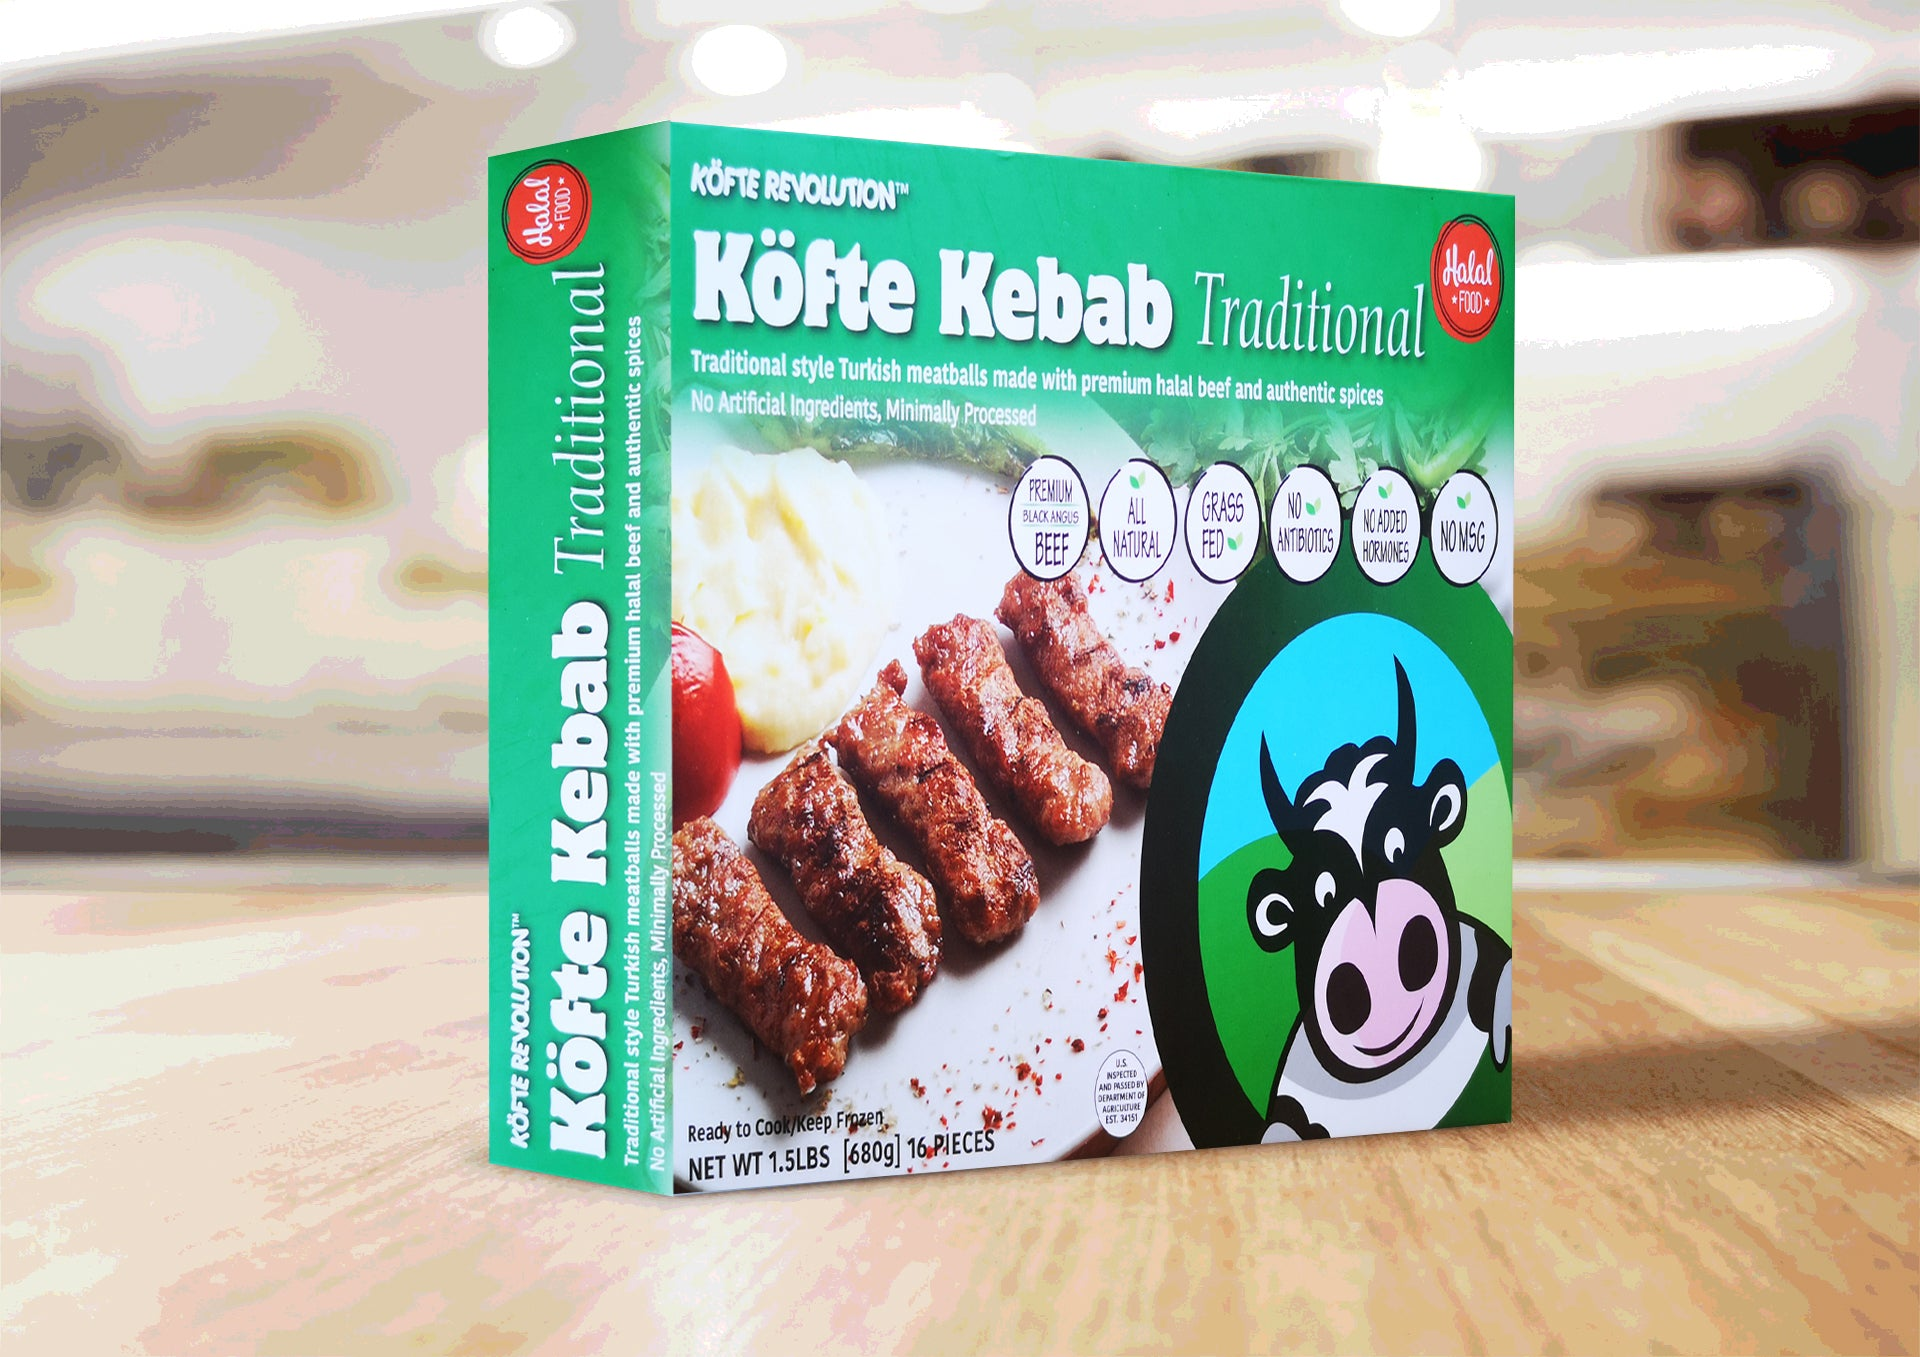 KÖFTE KEBAB Traditional (1.5 lbs)